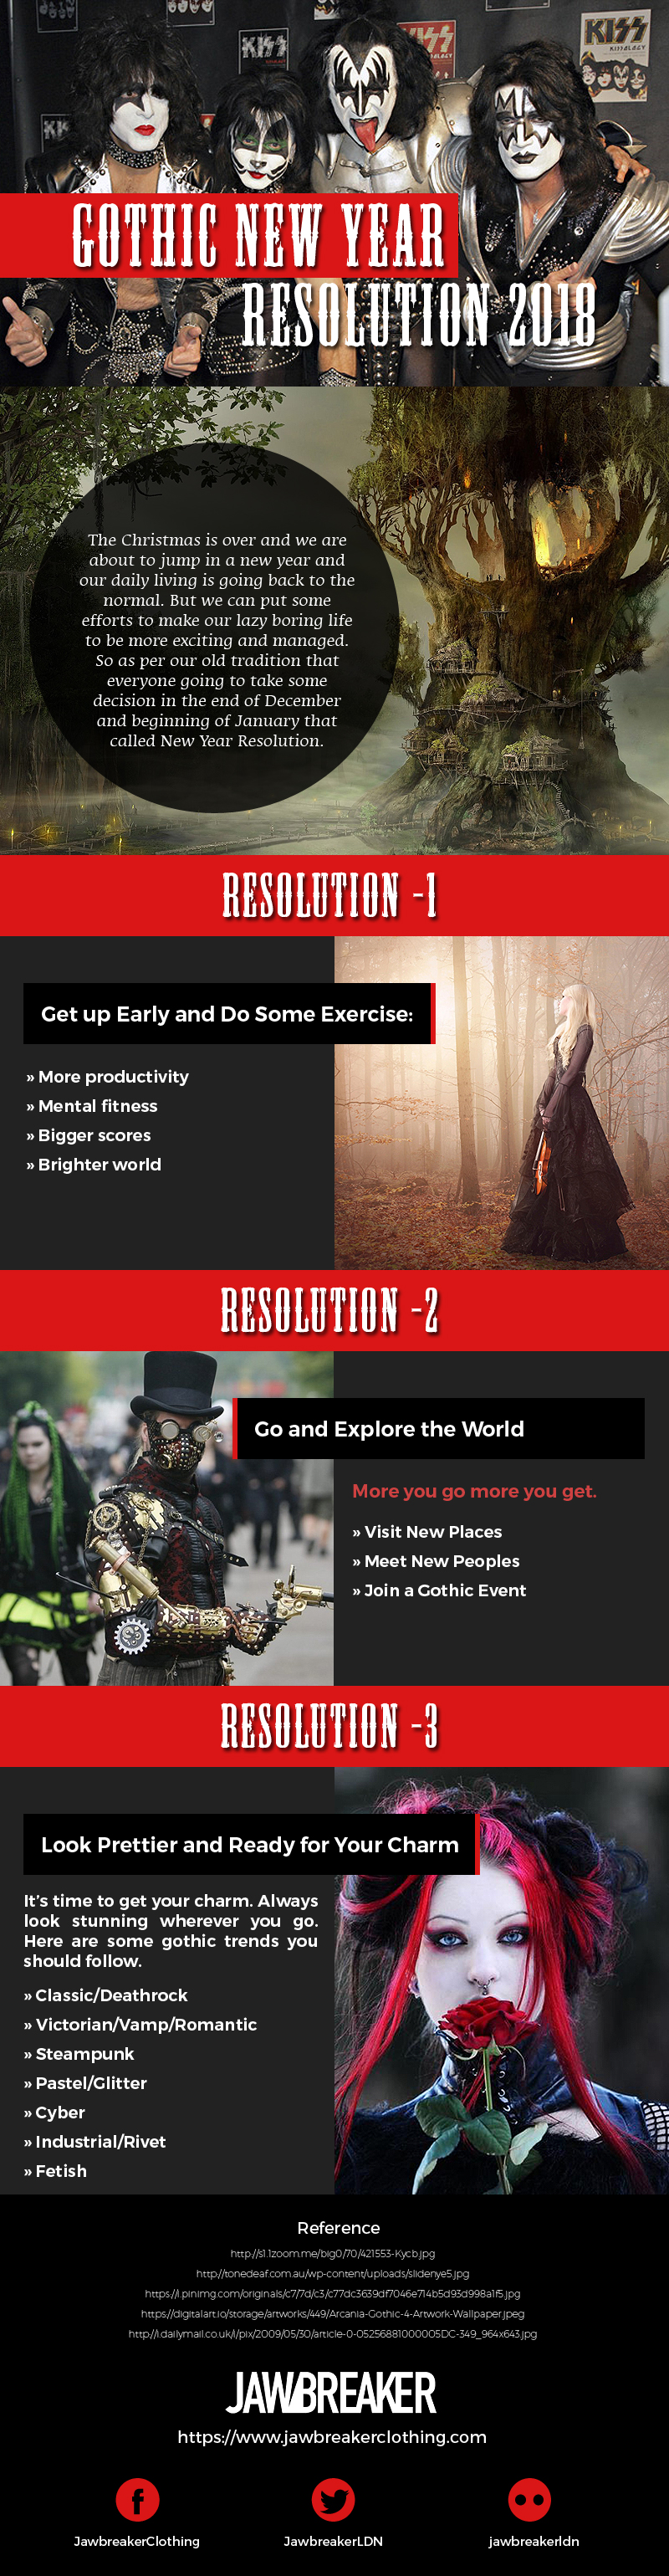 Gothic New Year Resolutions 2018 [Infographic]